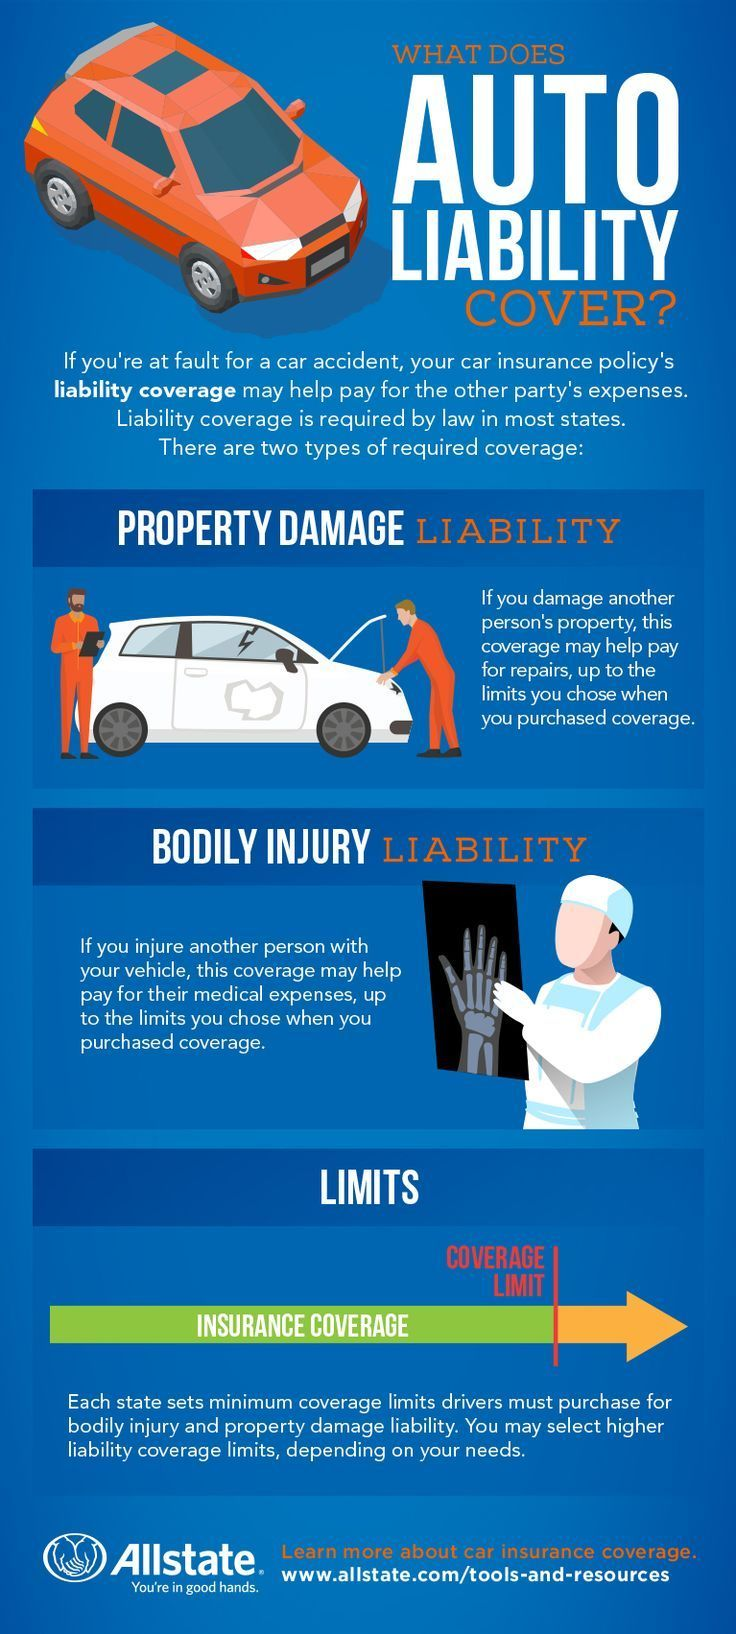 One of the most basic types of auto insurance coverage